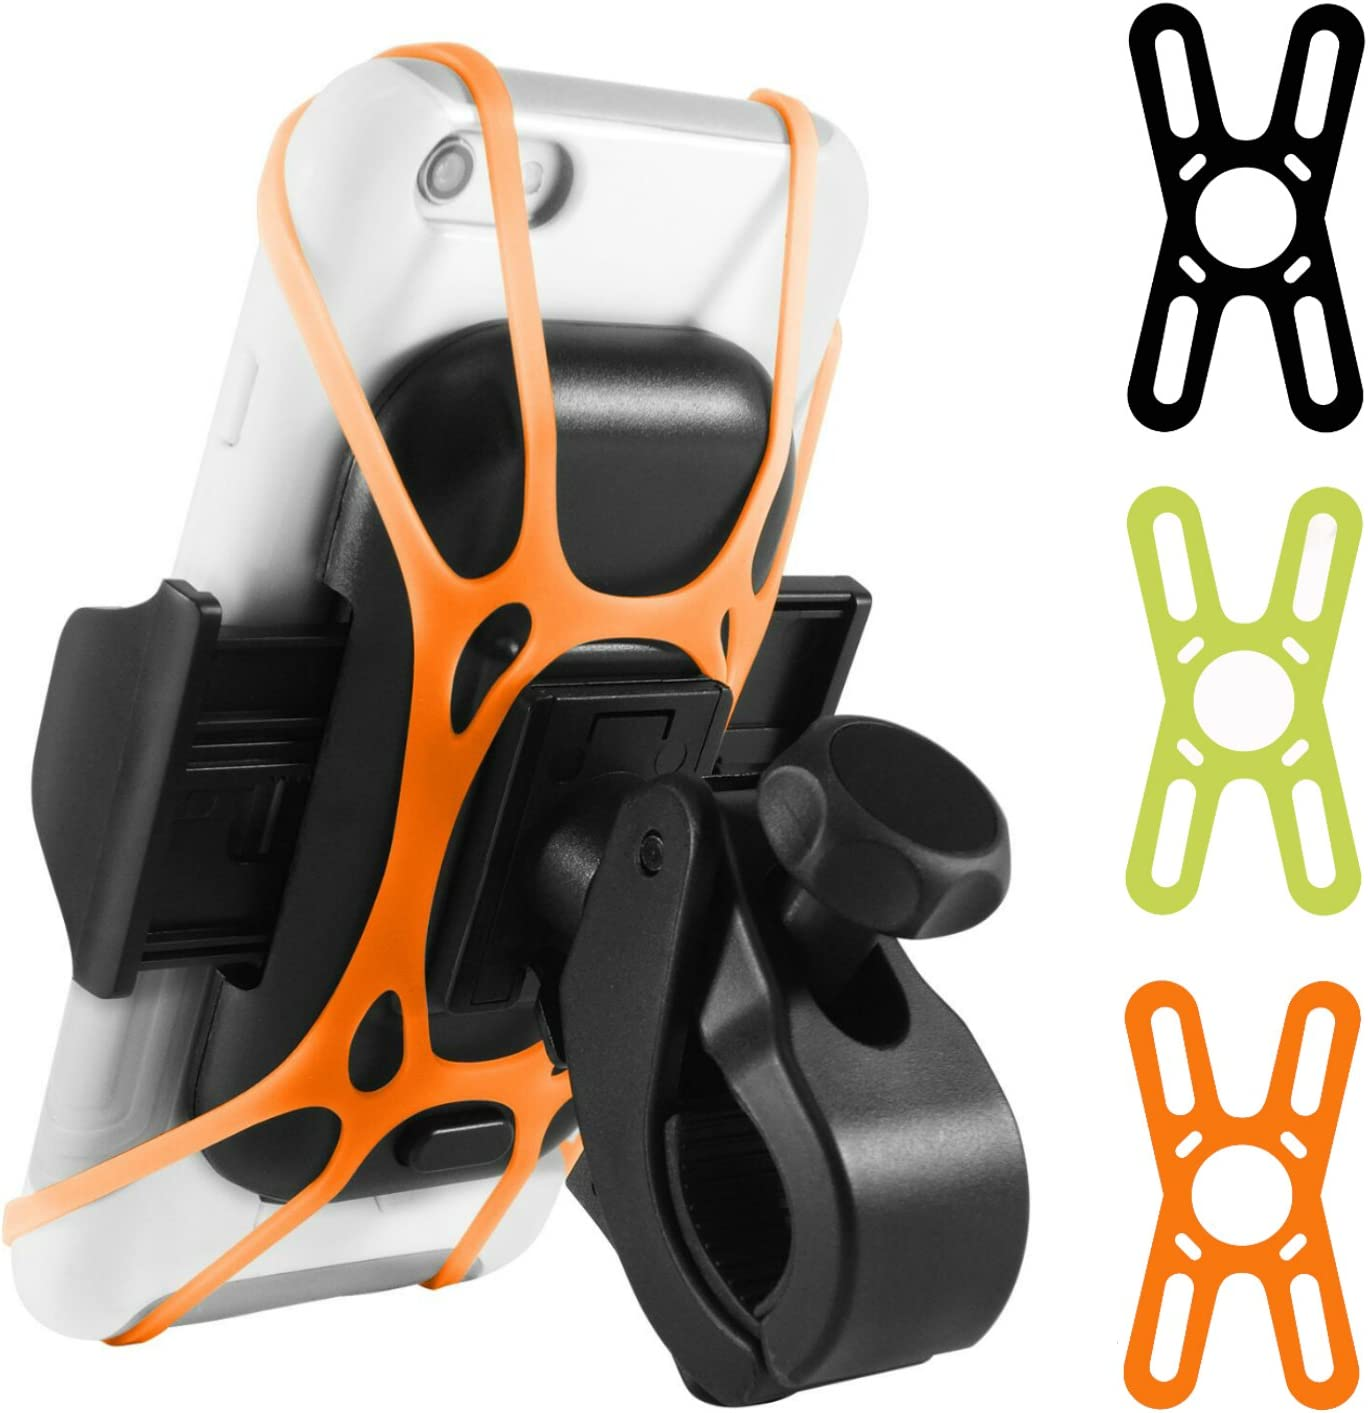 Macally Cell Phone Holder for Bike - Strong Handlebar Clamp with Silicone Straps - Great for Bumpy Roads and High Speeds - 360° Rotatable Bicycle Phone Holder - Universal Fit Phone Mount for Bicycle